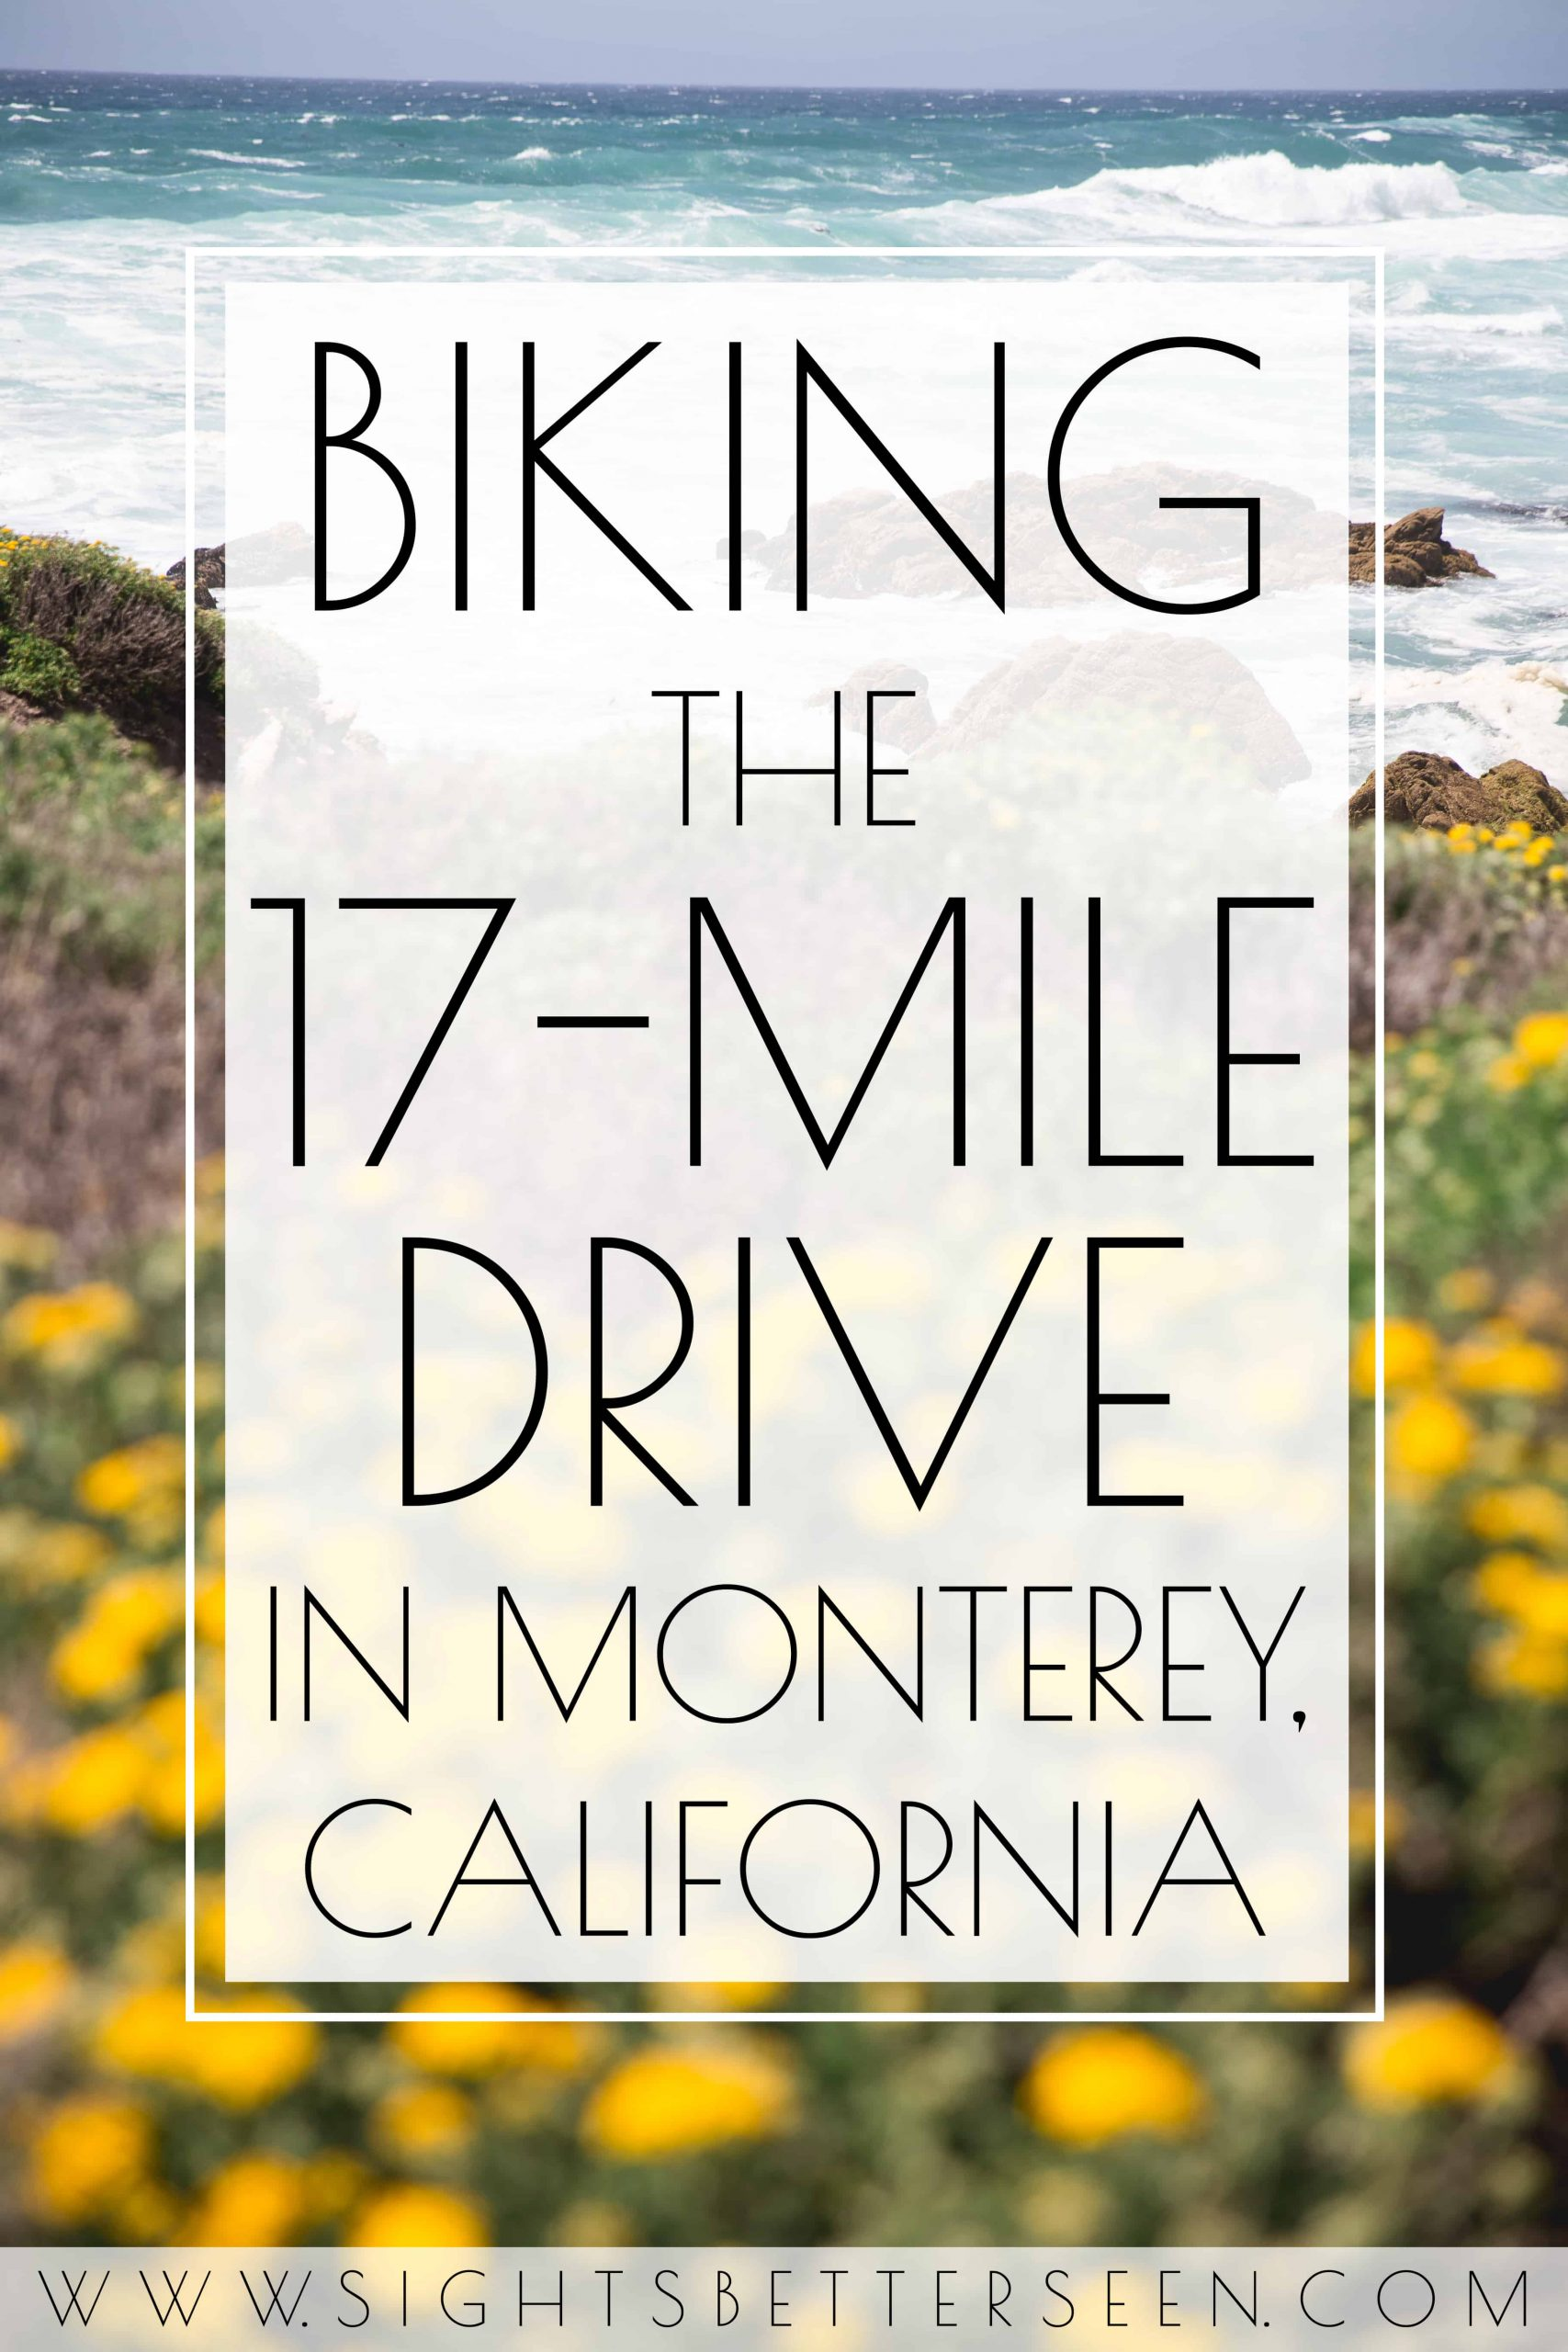 Biking the 17 Mile Drive in Monterey, California - All you need to know!